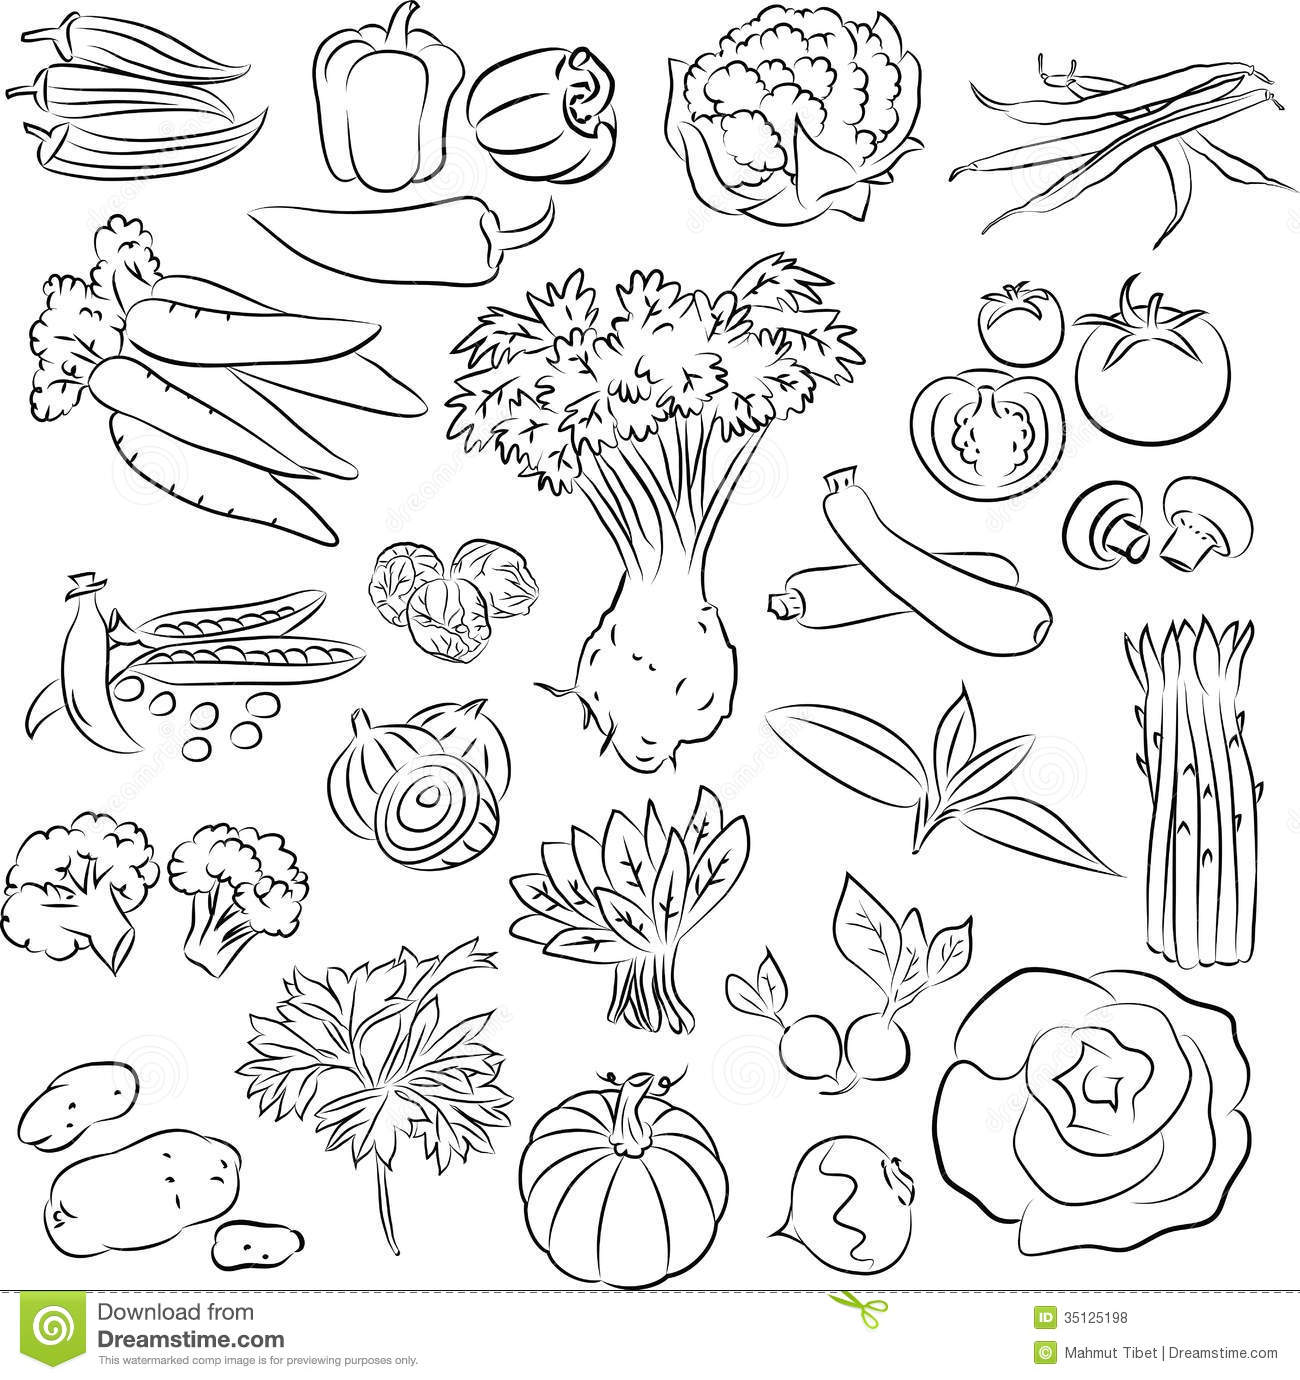 Line Art Vegetables : Vegetables set royalty free stock photos image